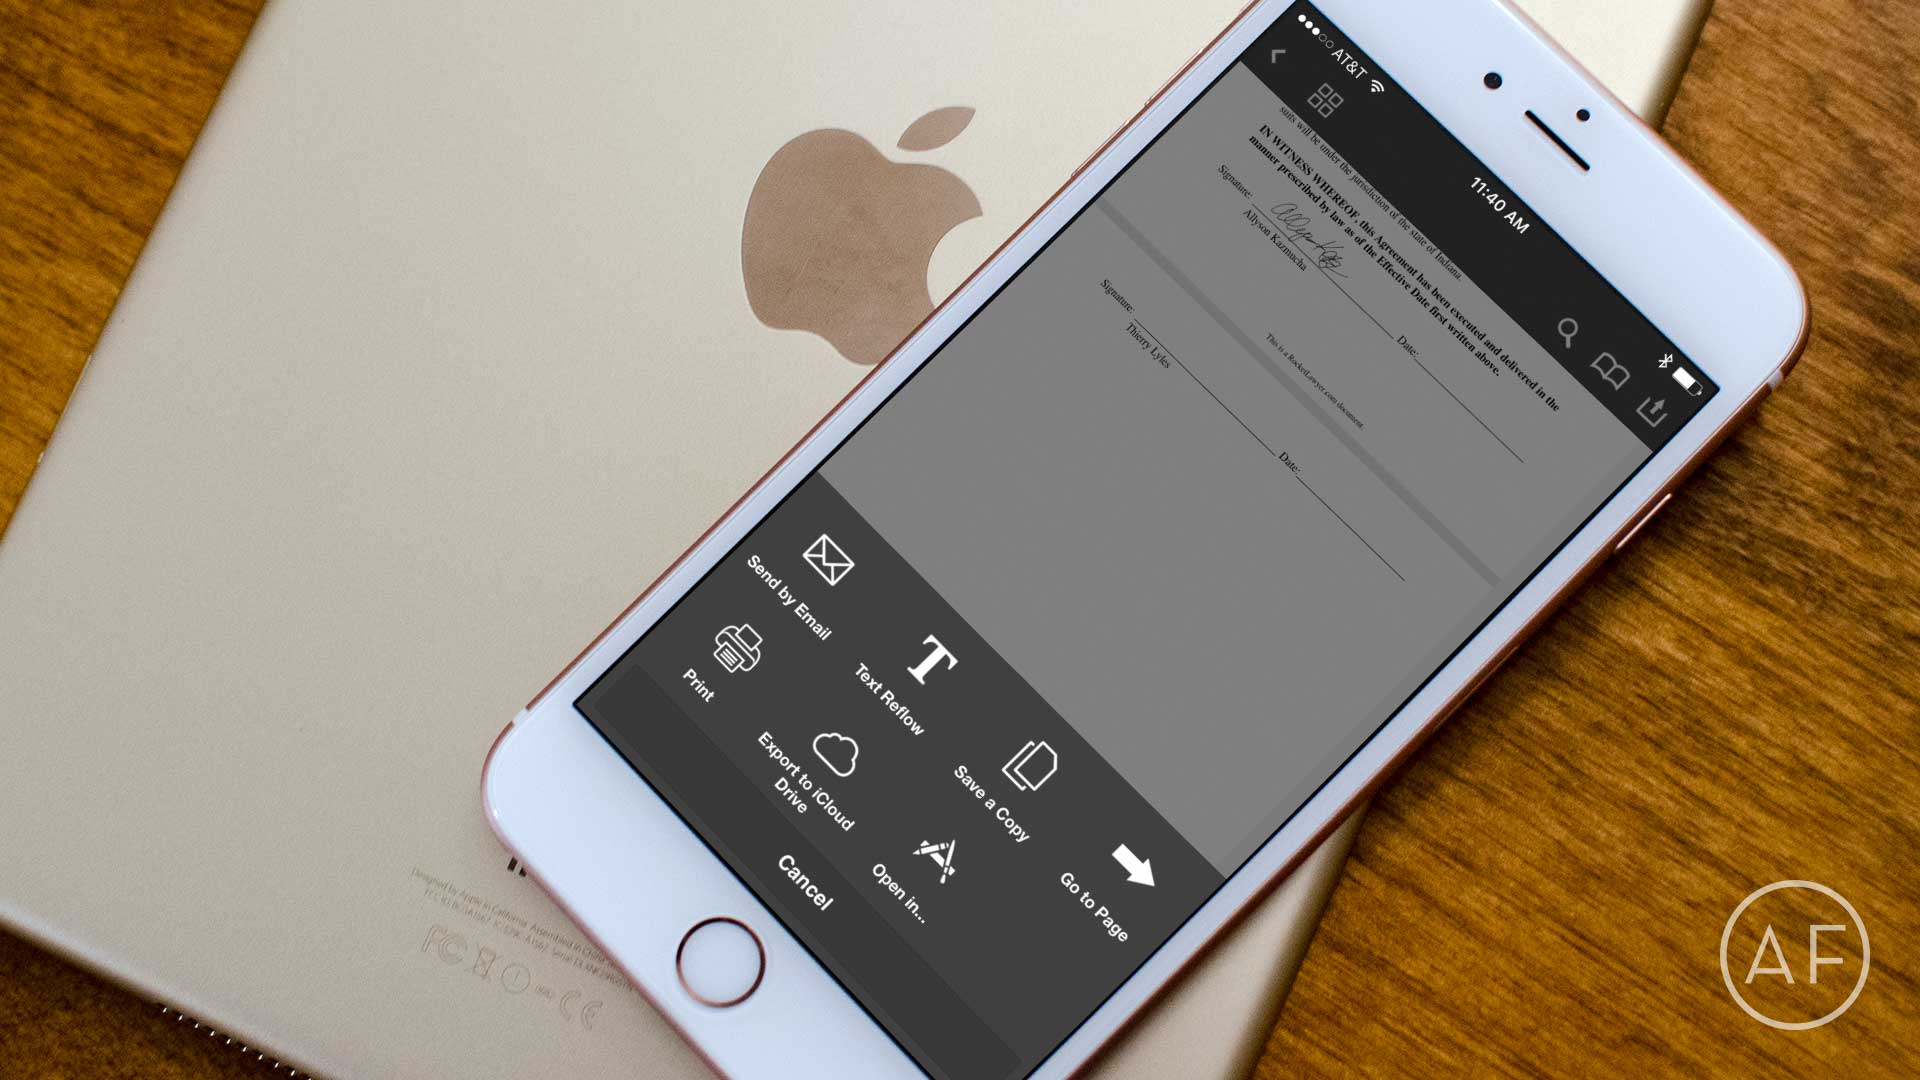 How to scan, sign, and send PDFs on iPhone and iPad